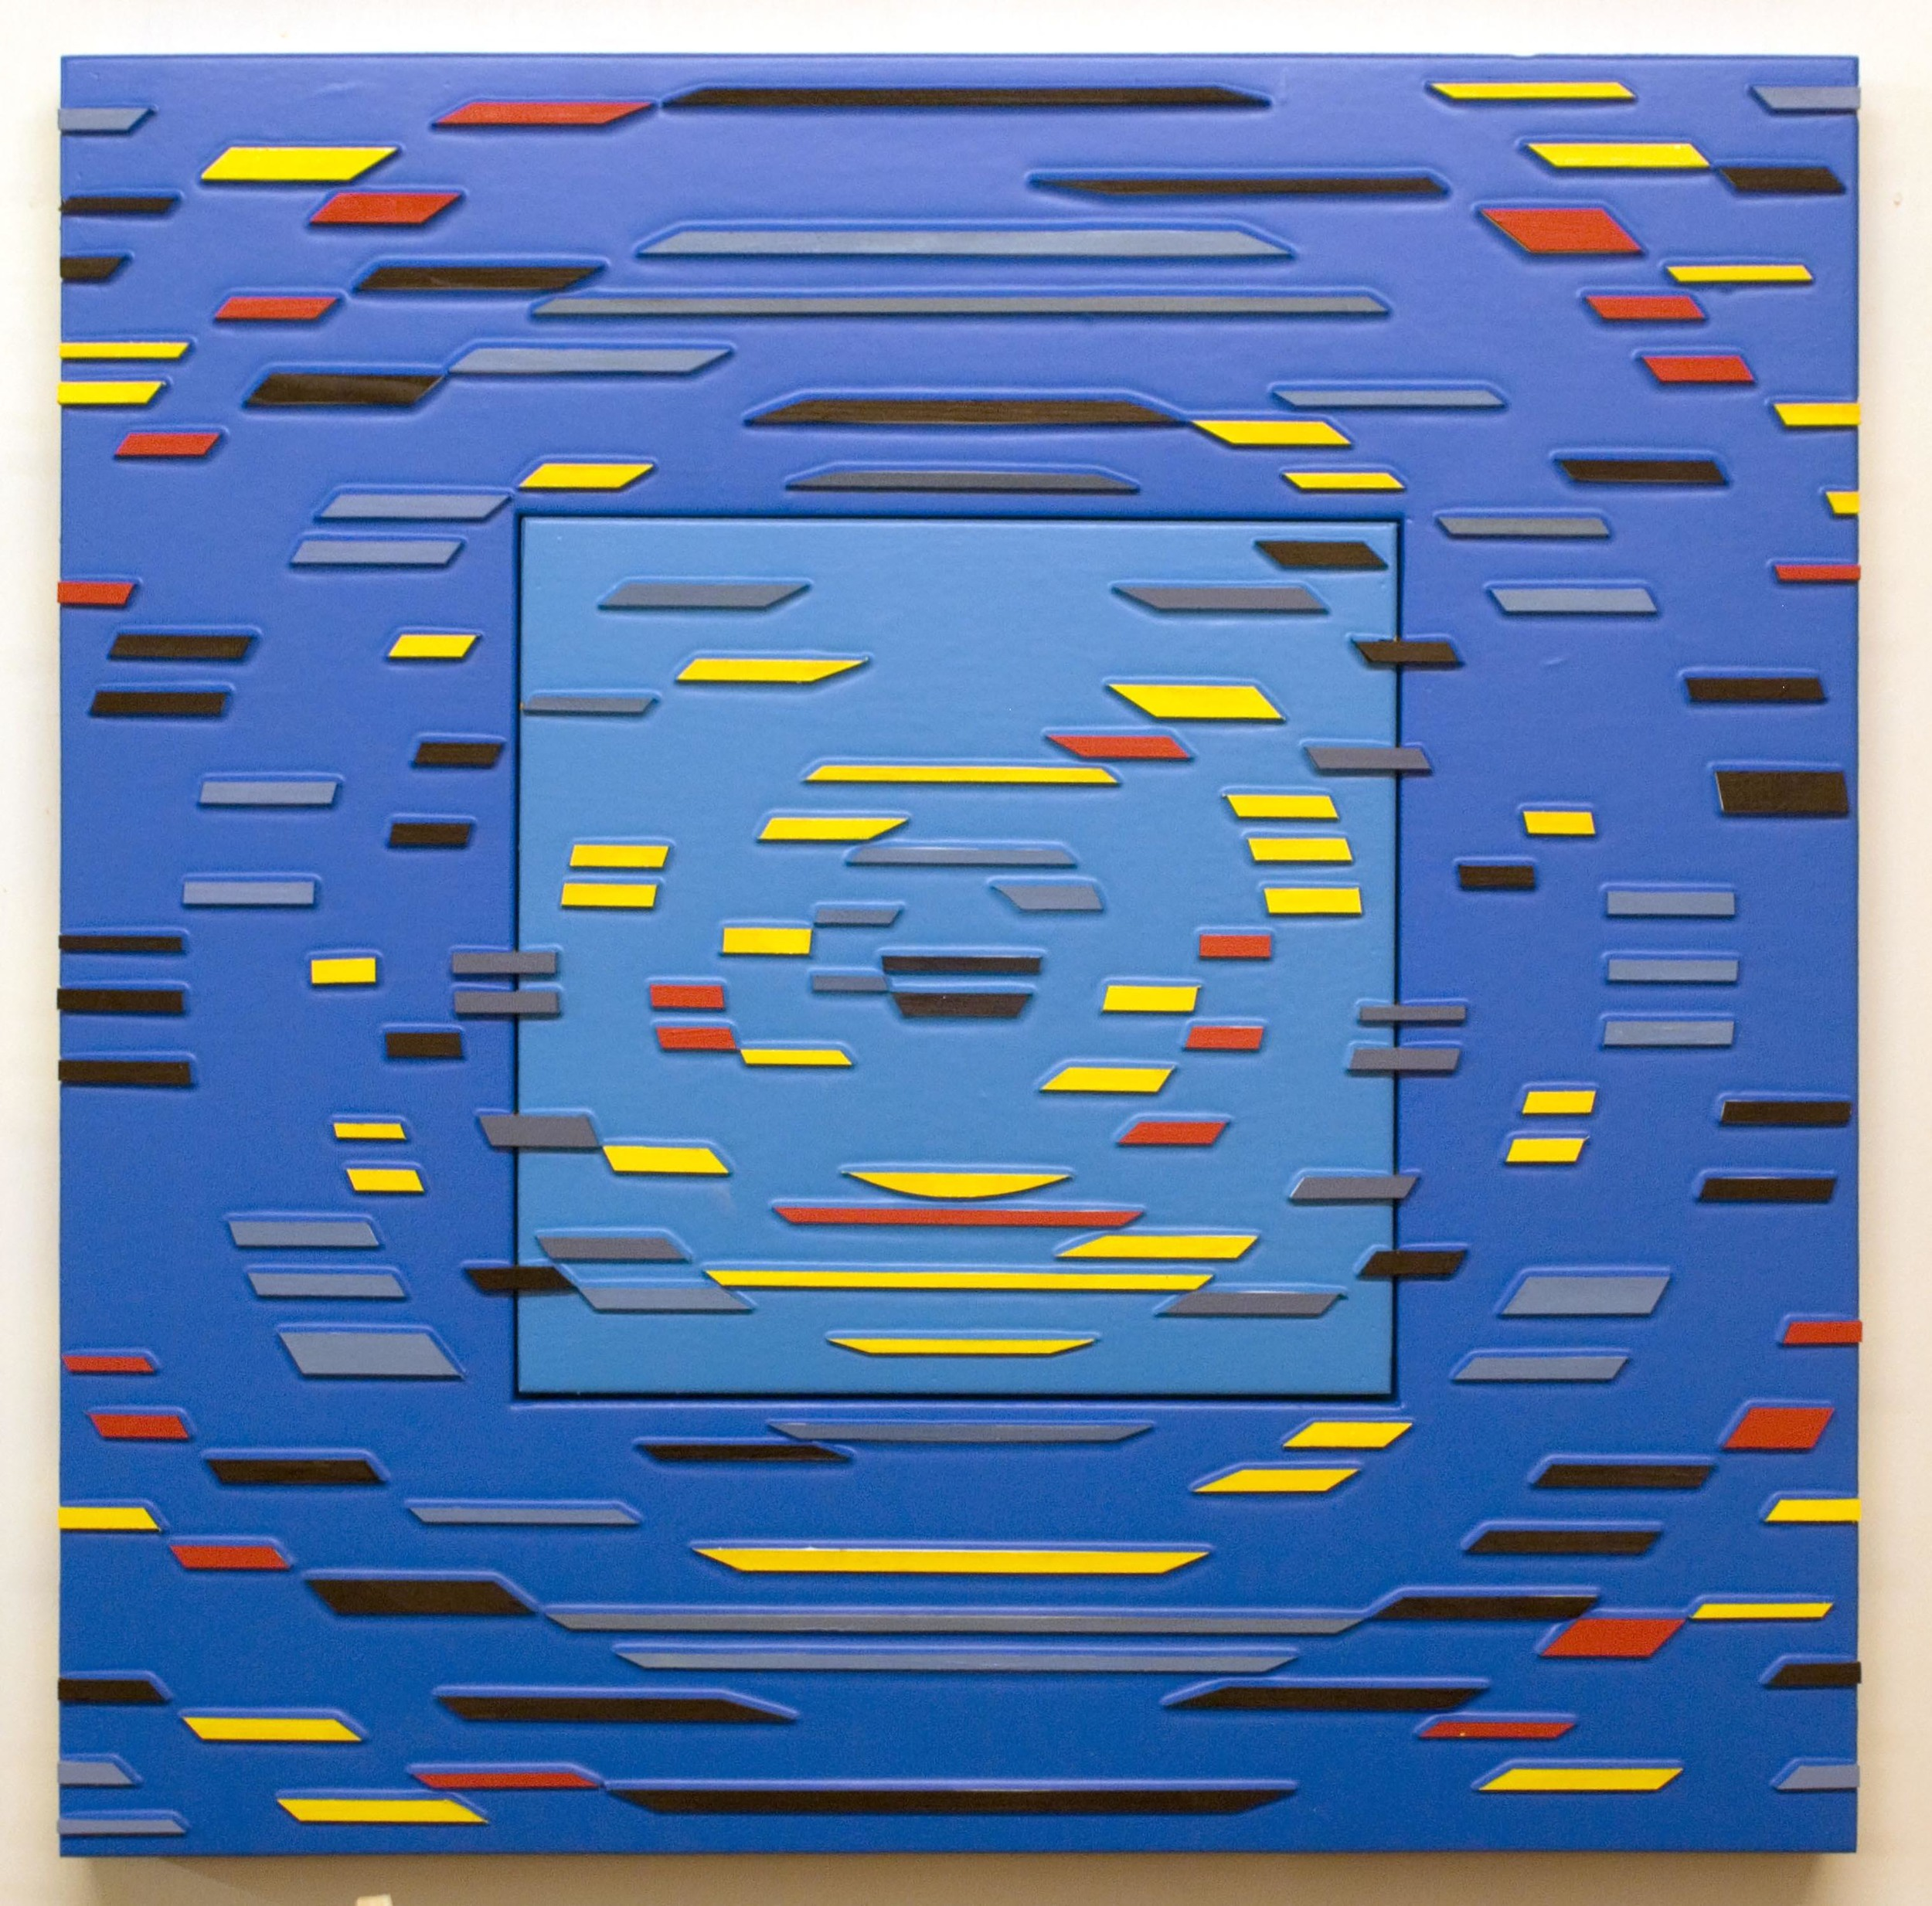 'Color Runs Prime' Poured acrylic paint and wood on panel, 36 x 36 in, 2011